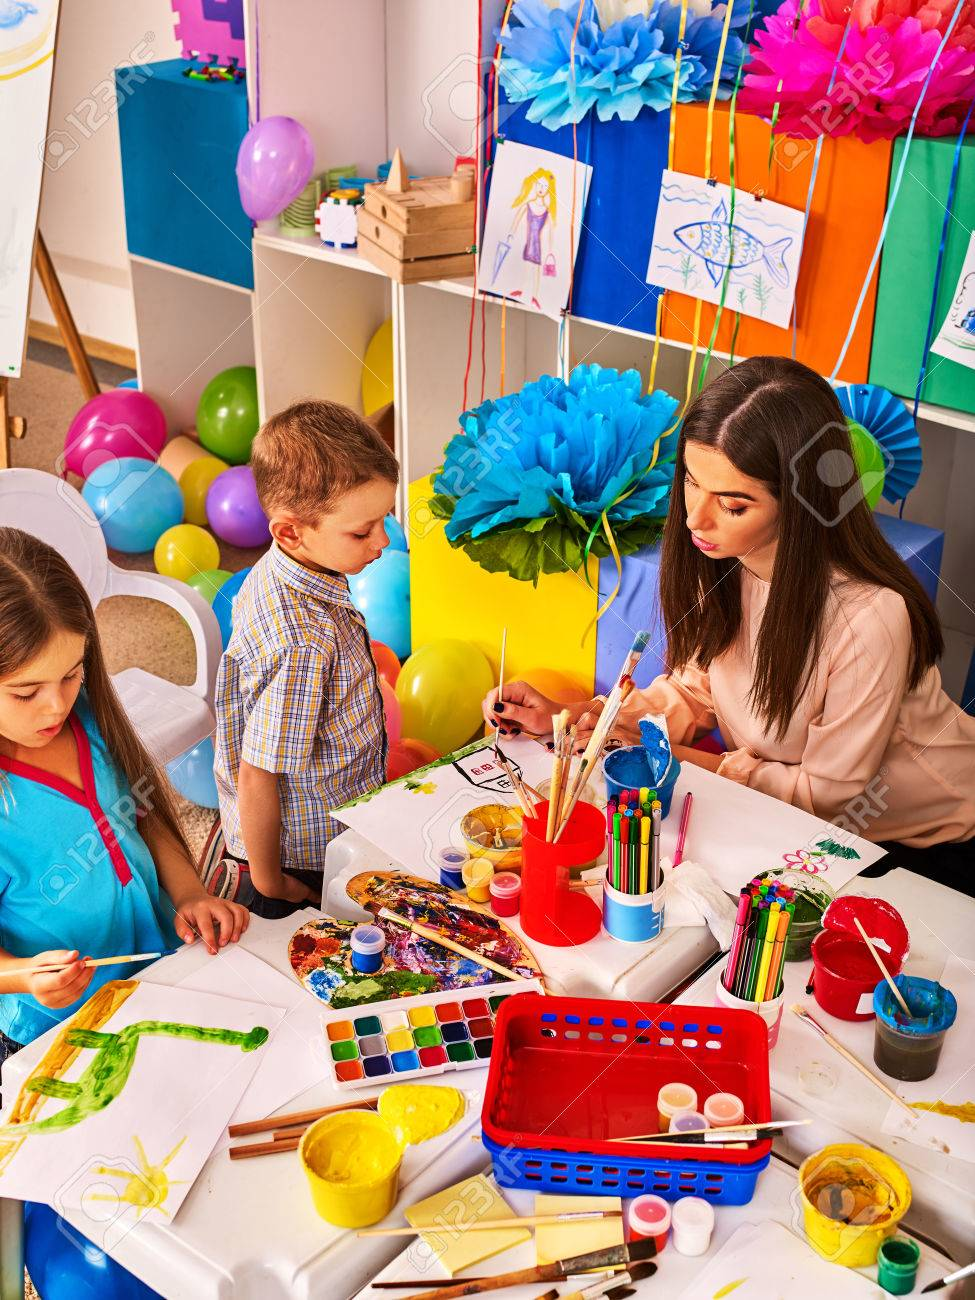 Childrens Paint Brushes And Children Painting And Drawing In.. Stock ...